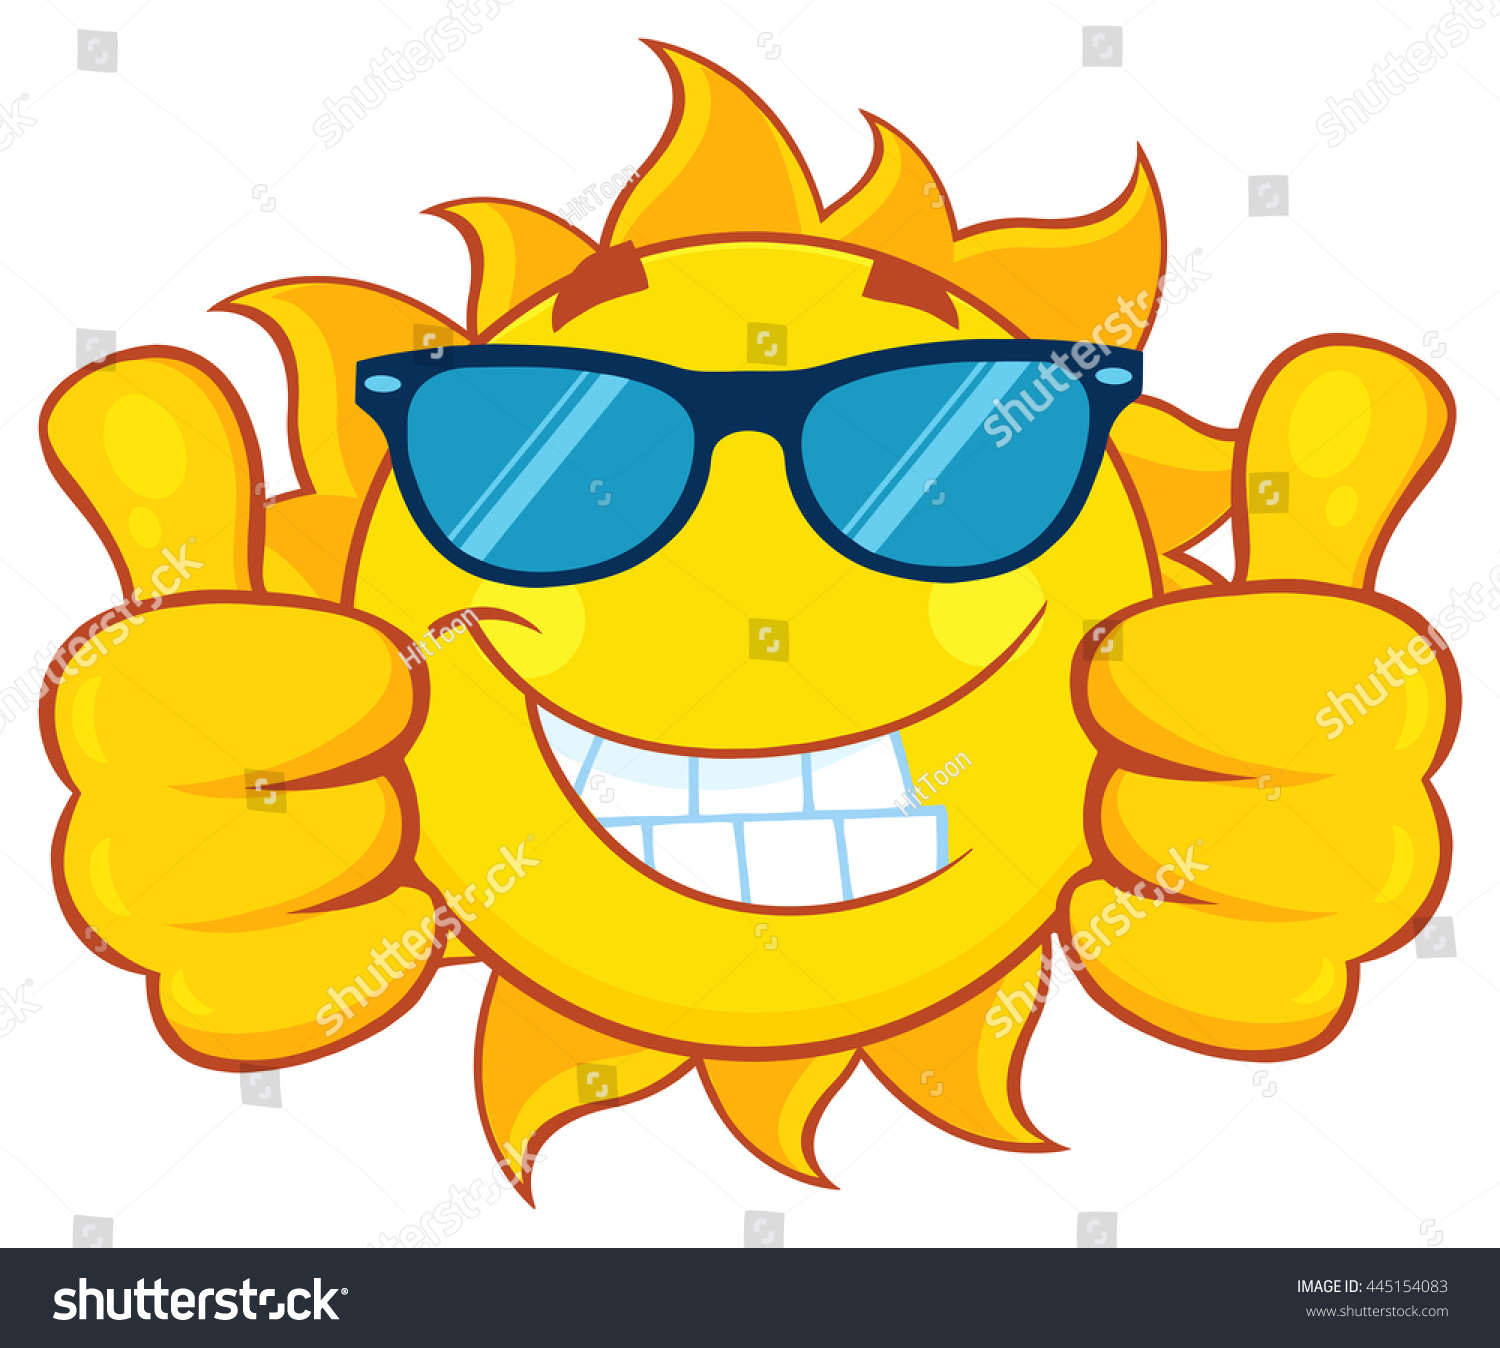 Smiling sun with sunglasses - Smiling Sun Cartoon Mascot Character With Sunglasses Giving A Double Thumbs Up Vector Illustration Isolated